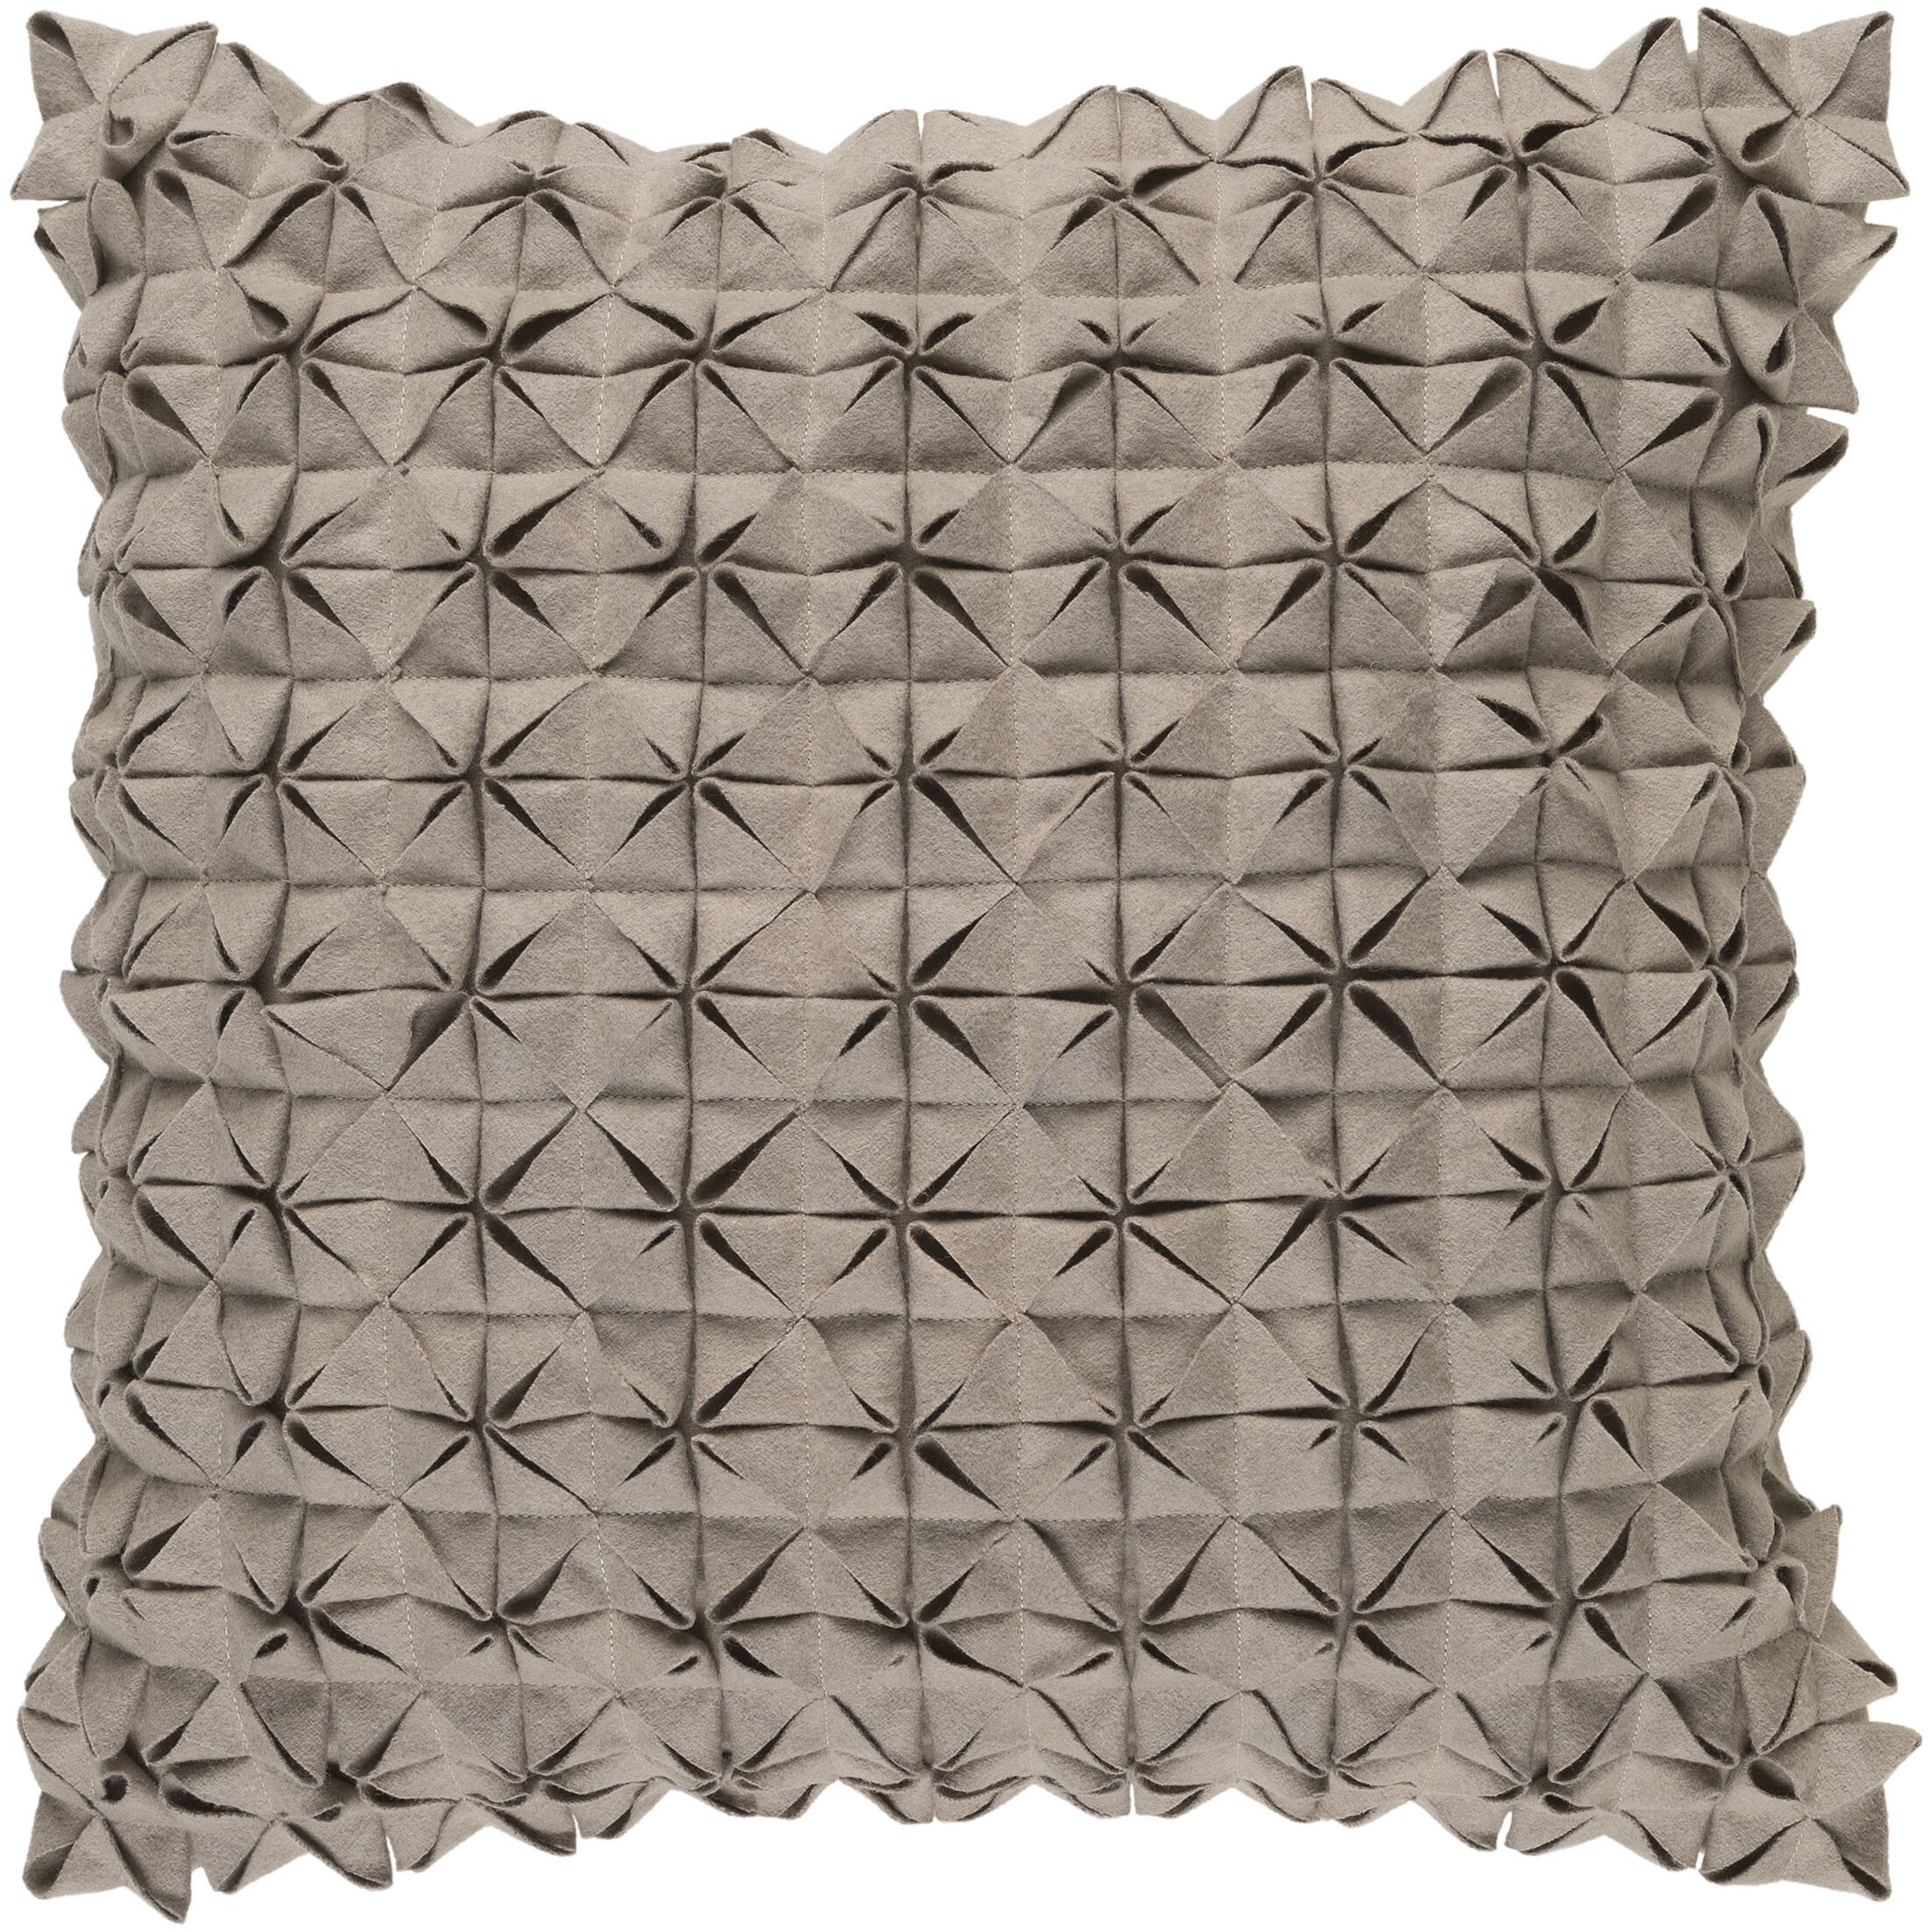 Ebro Structure 100% Wool Throw Pillow Cover Size: 20